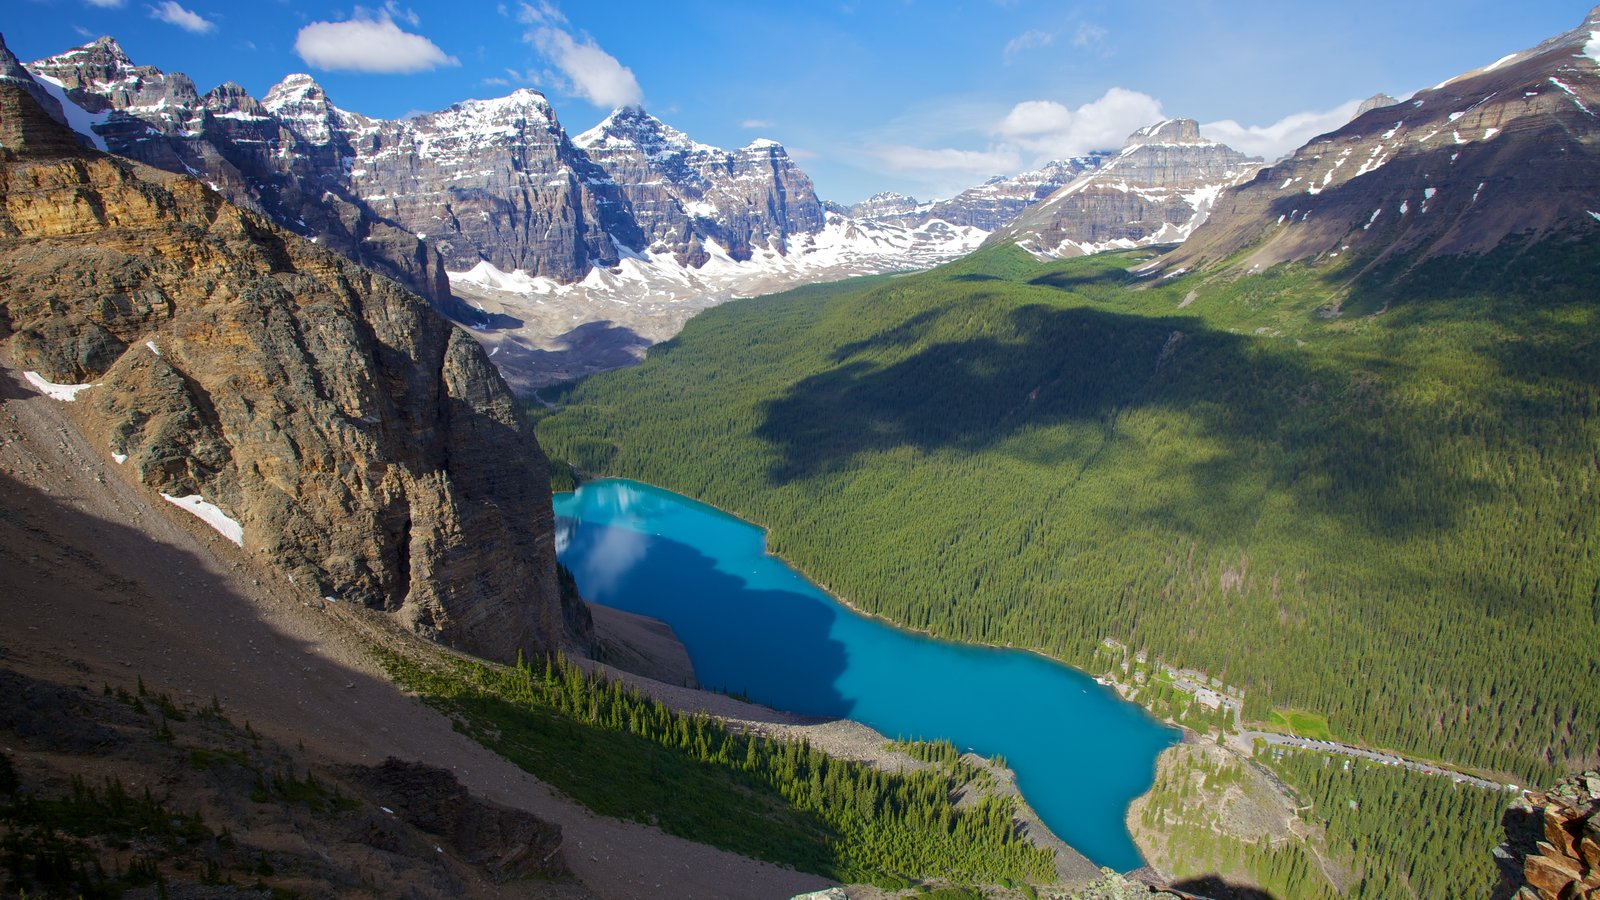 Moraine Lake showing landscape views, mountains and a lake or waterhole